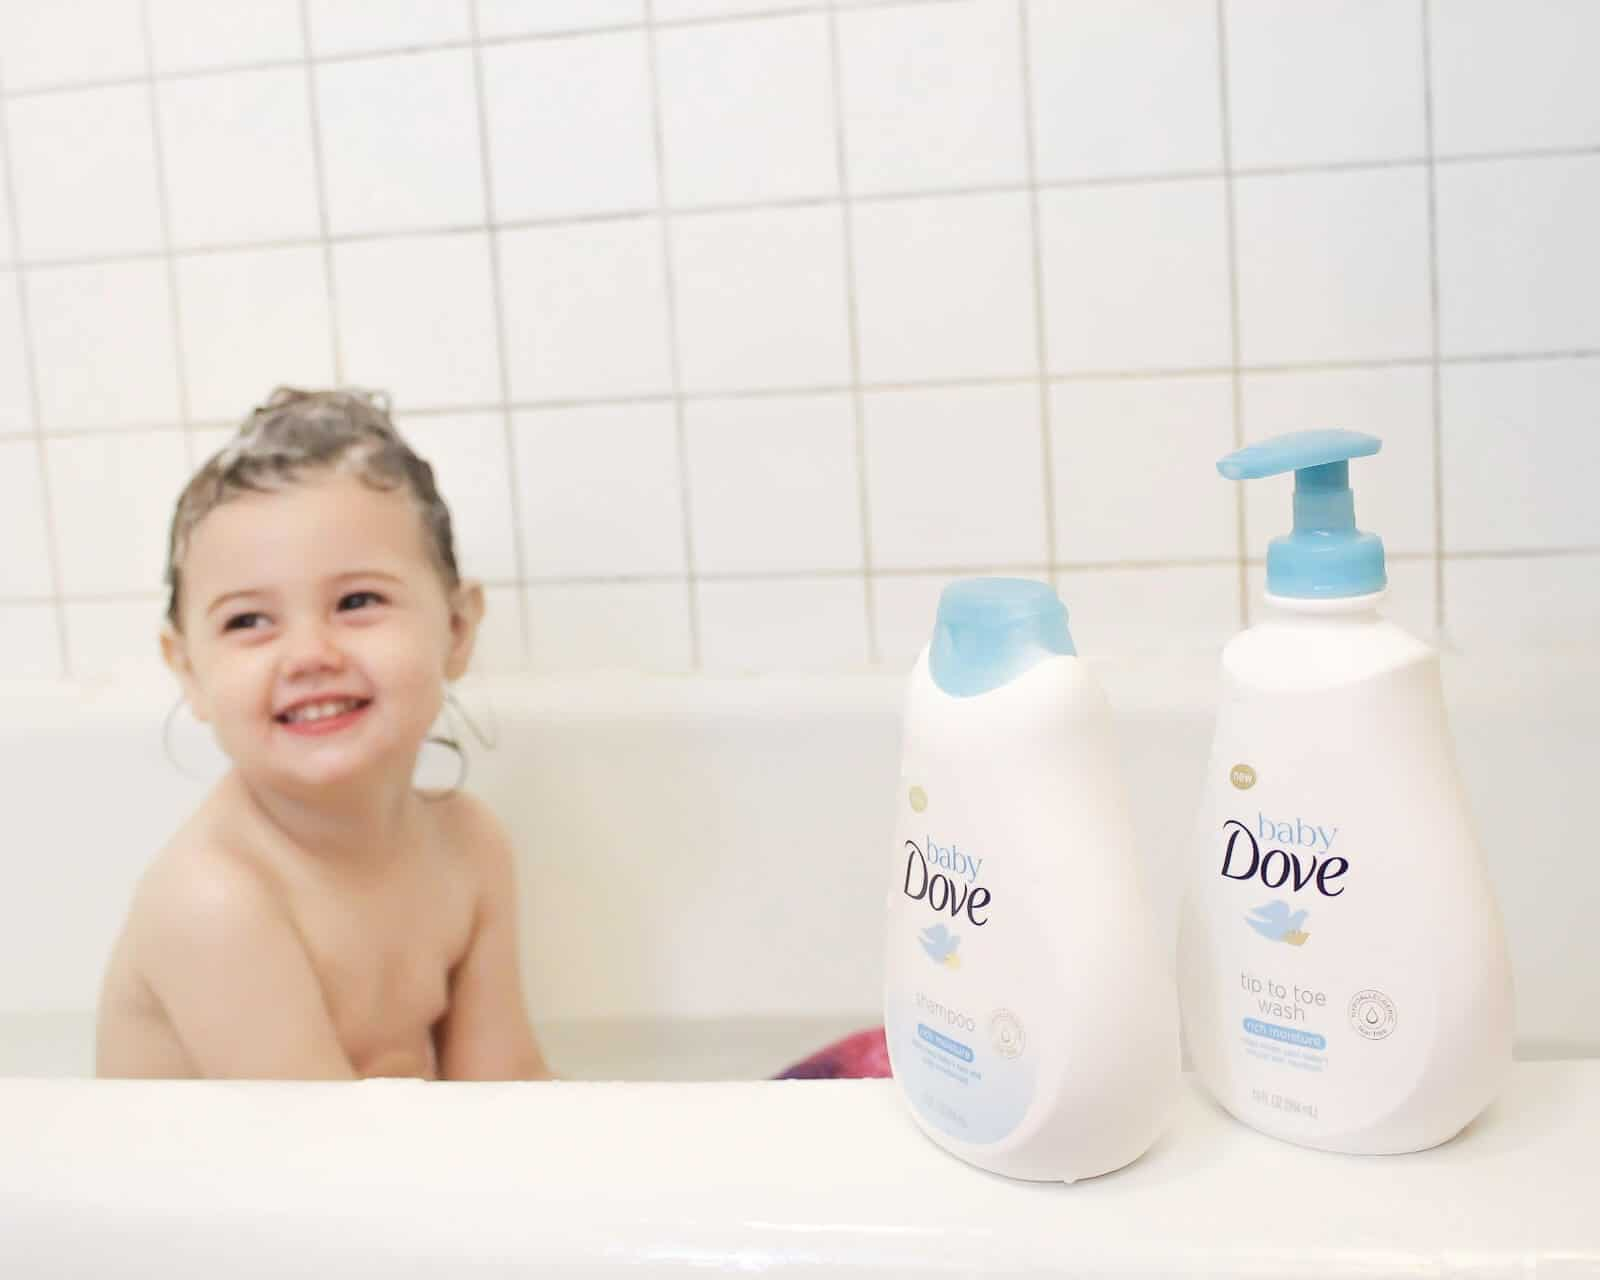 Tips for taking care of baby's skin in summer with Baby Dove products.